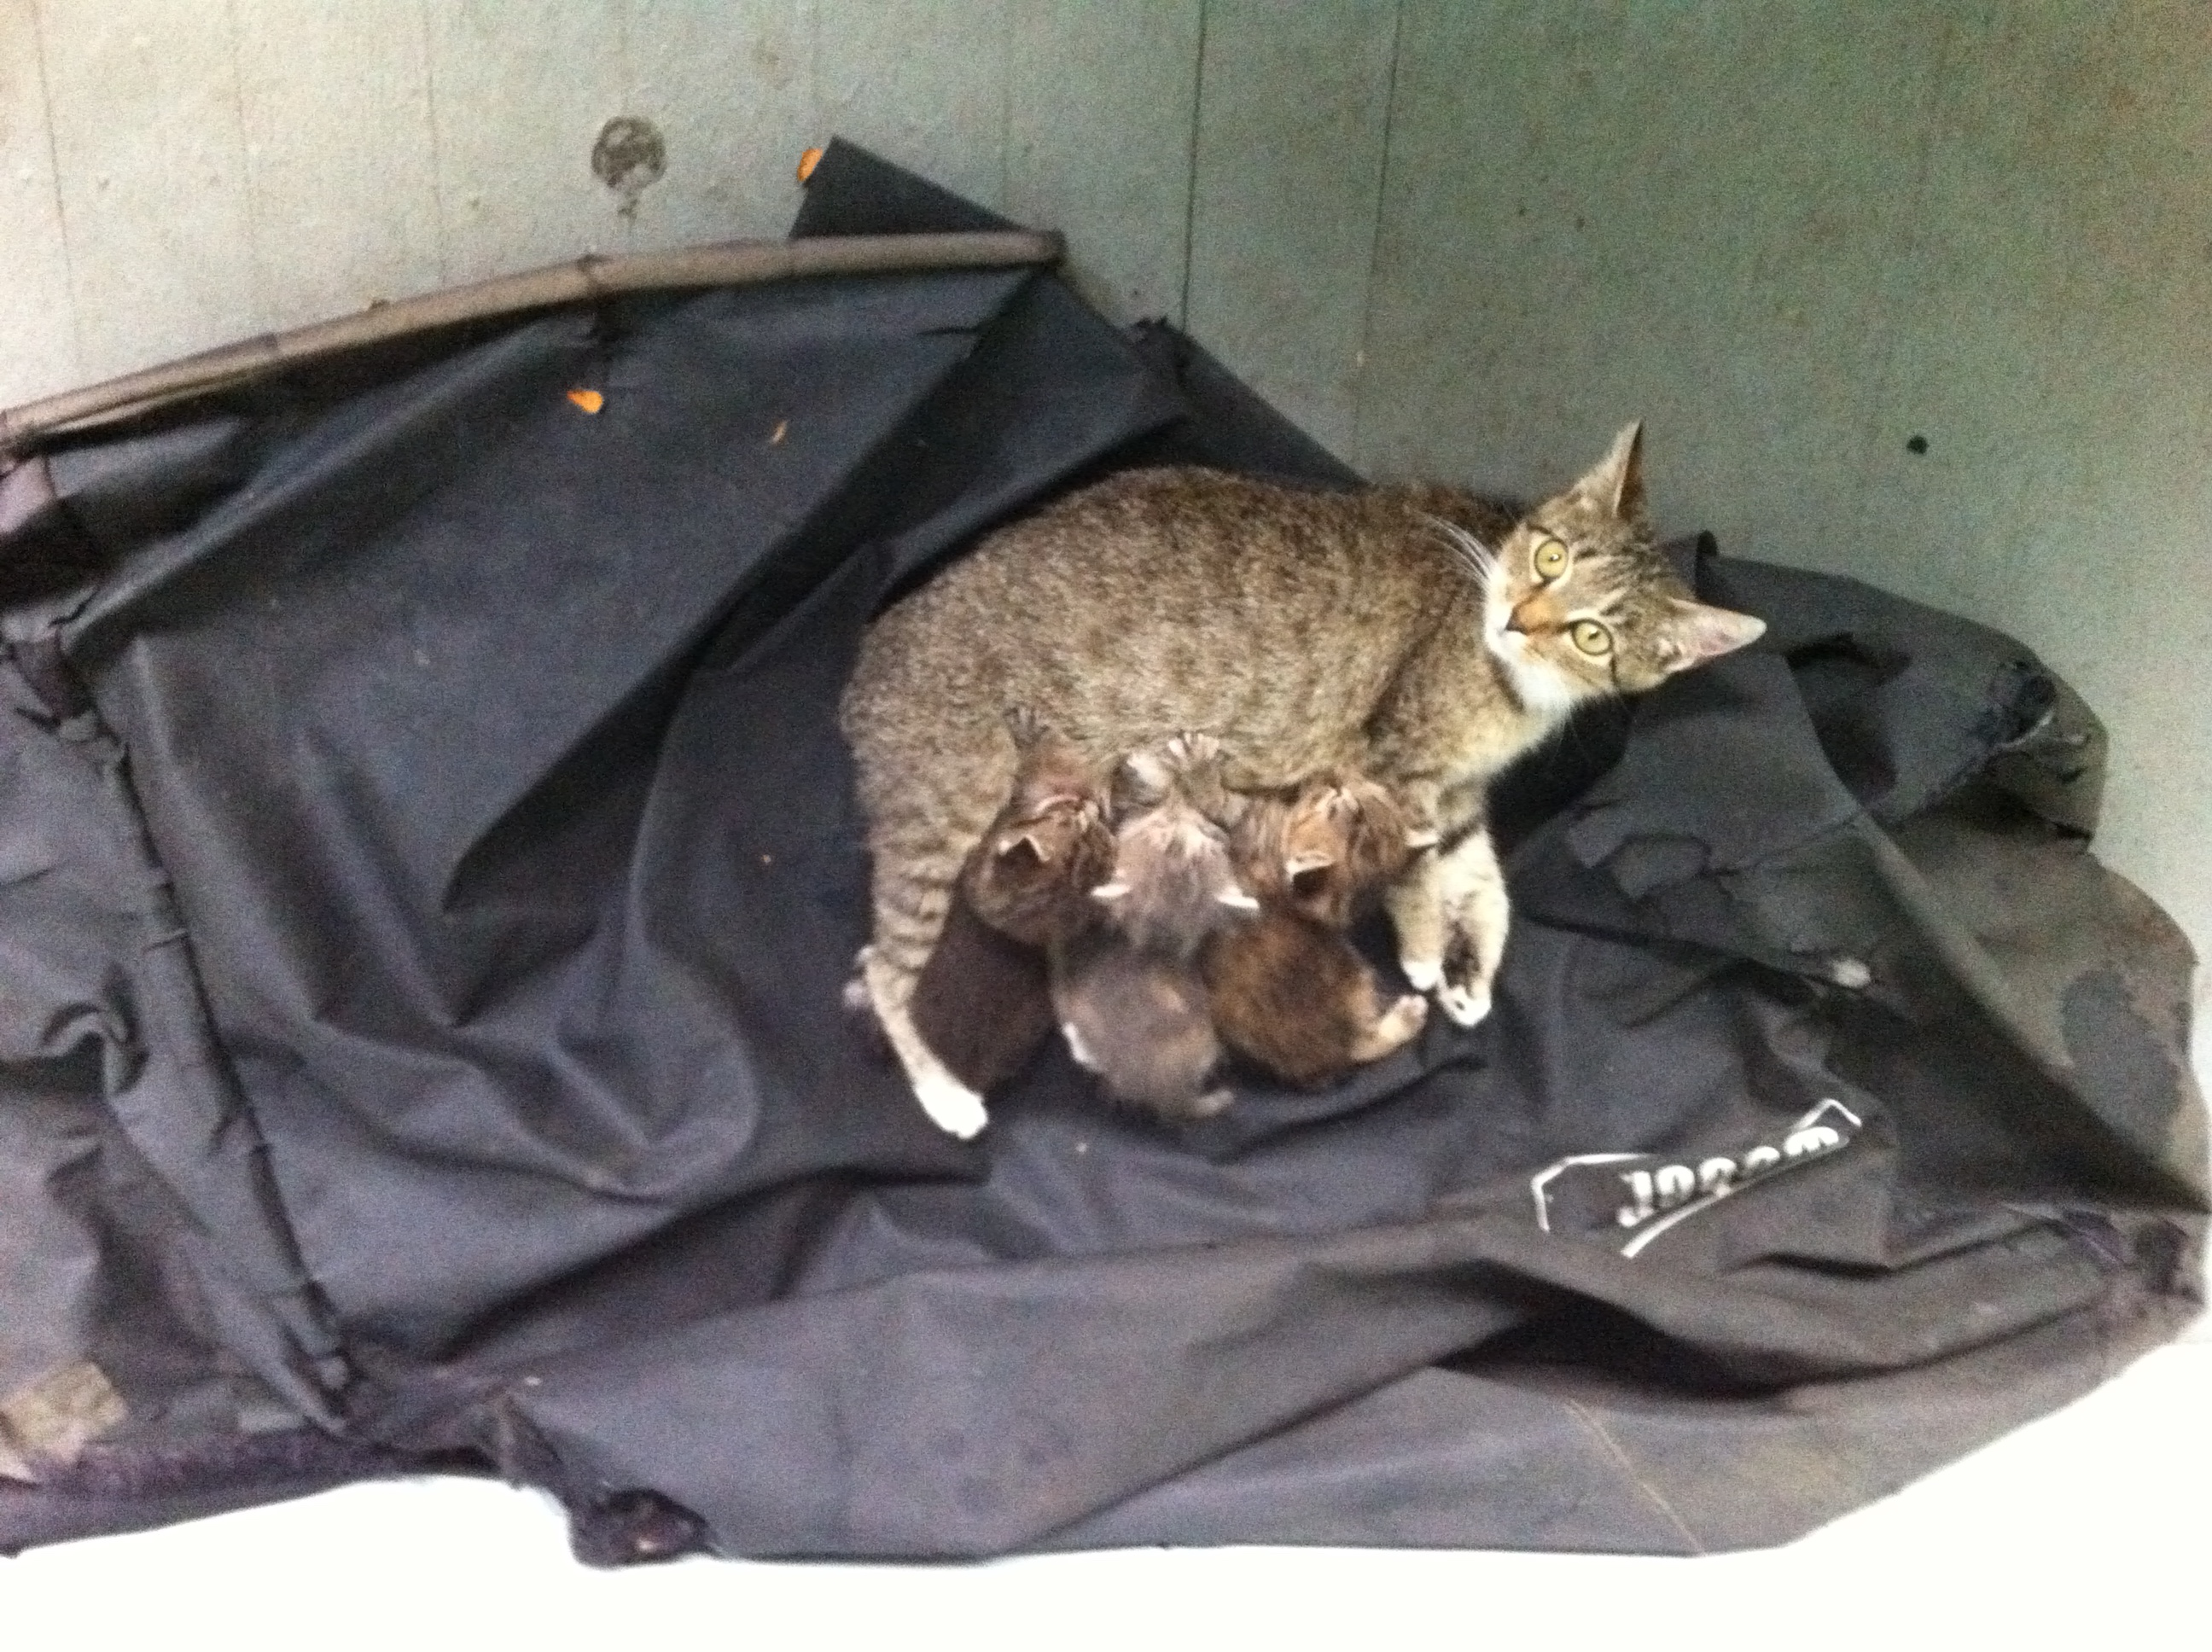 A cat and her kittens.